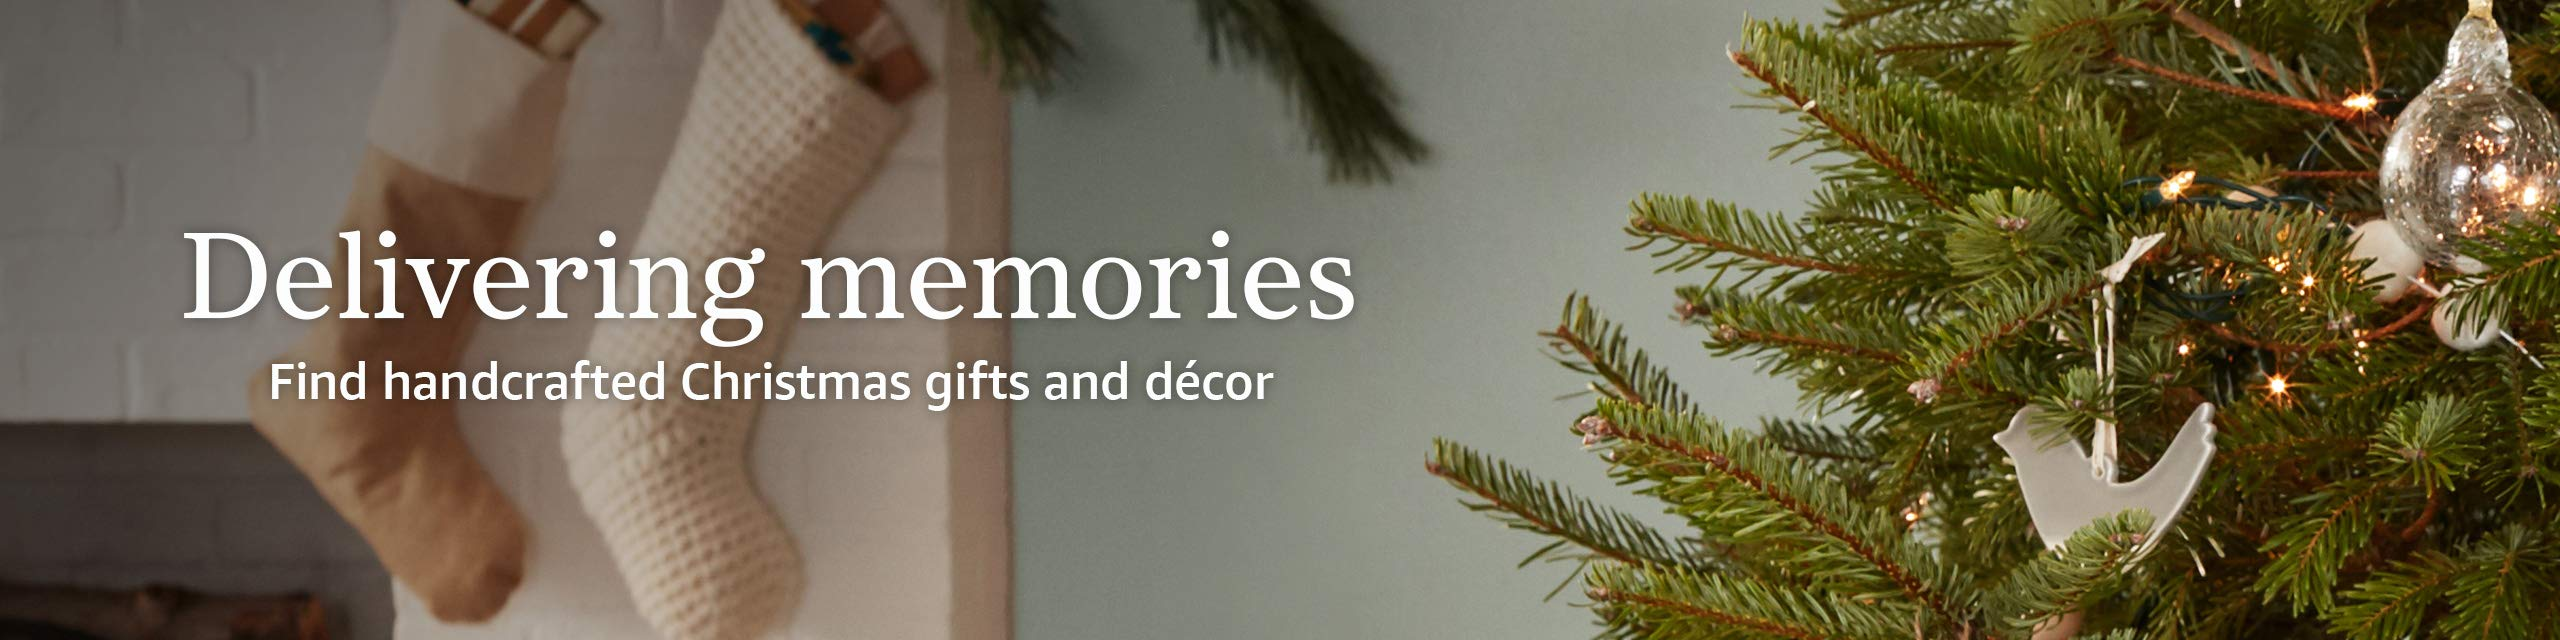 Handmade for you. Find the perfect gifts and décor.